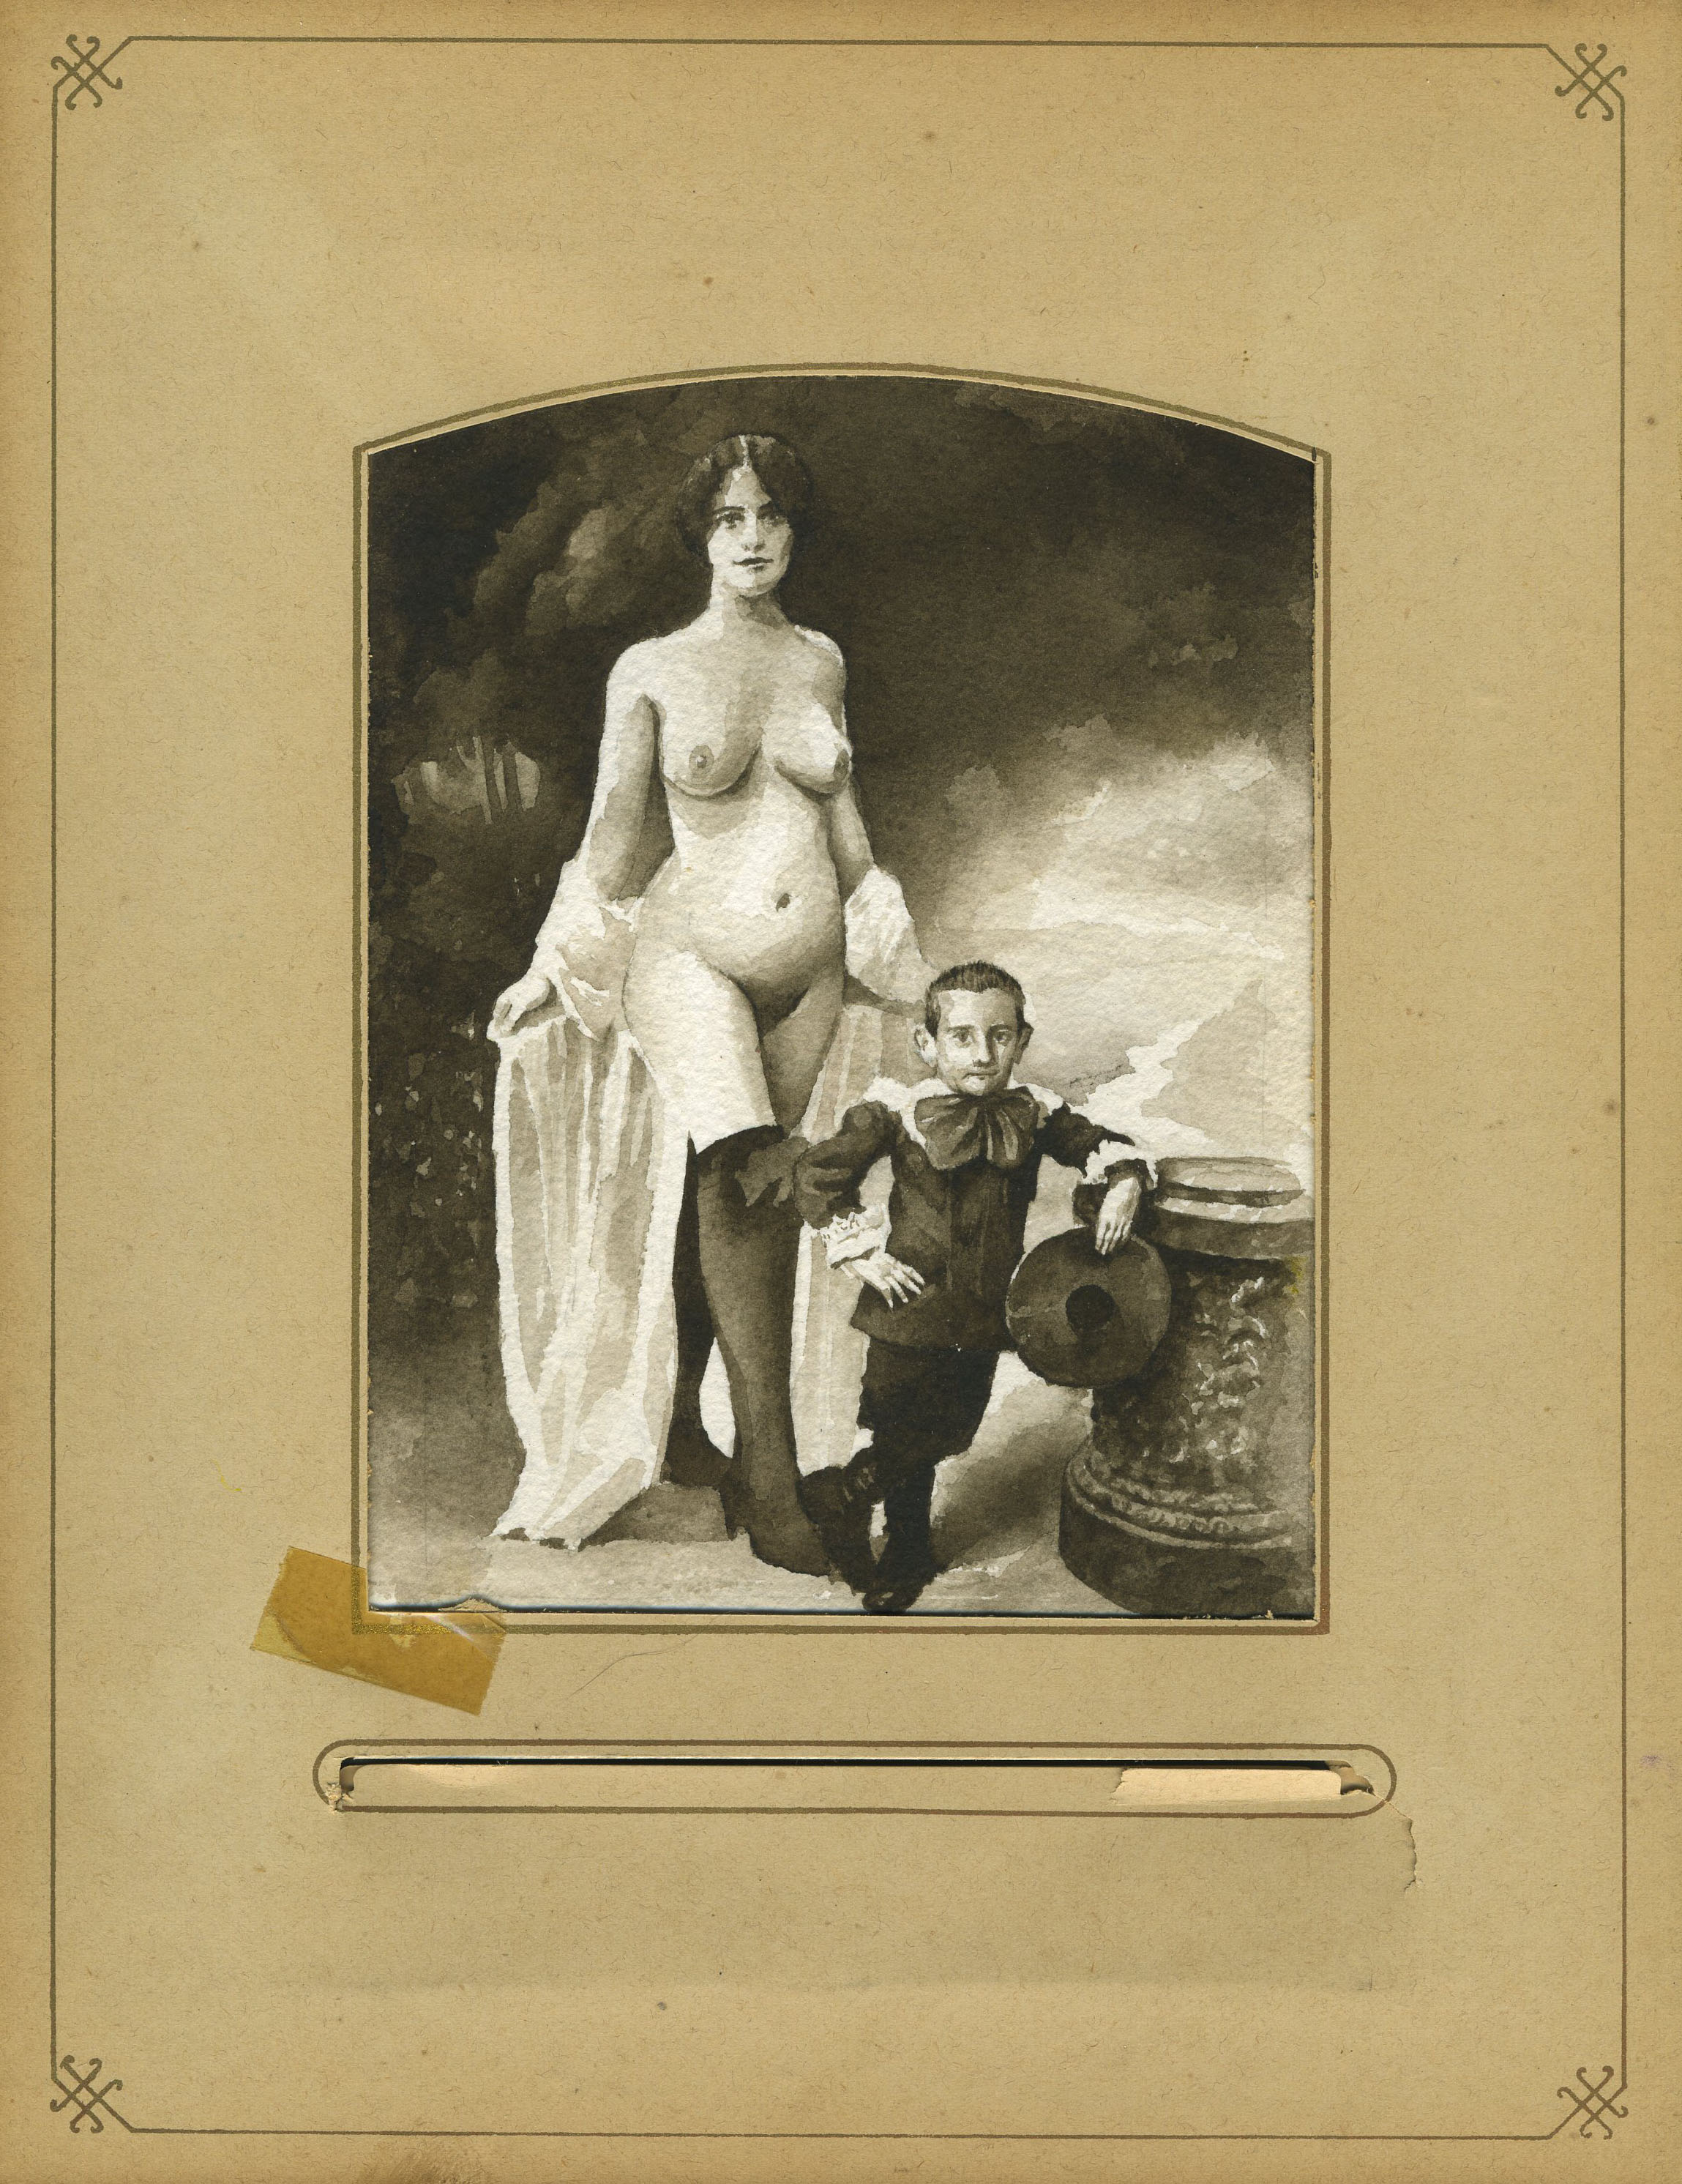 SEPIA LADY AND BOY